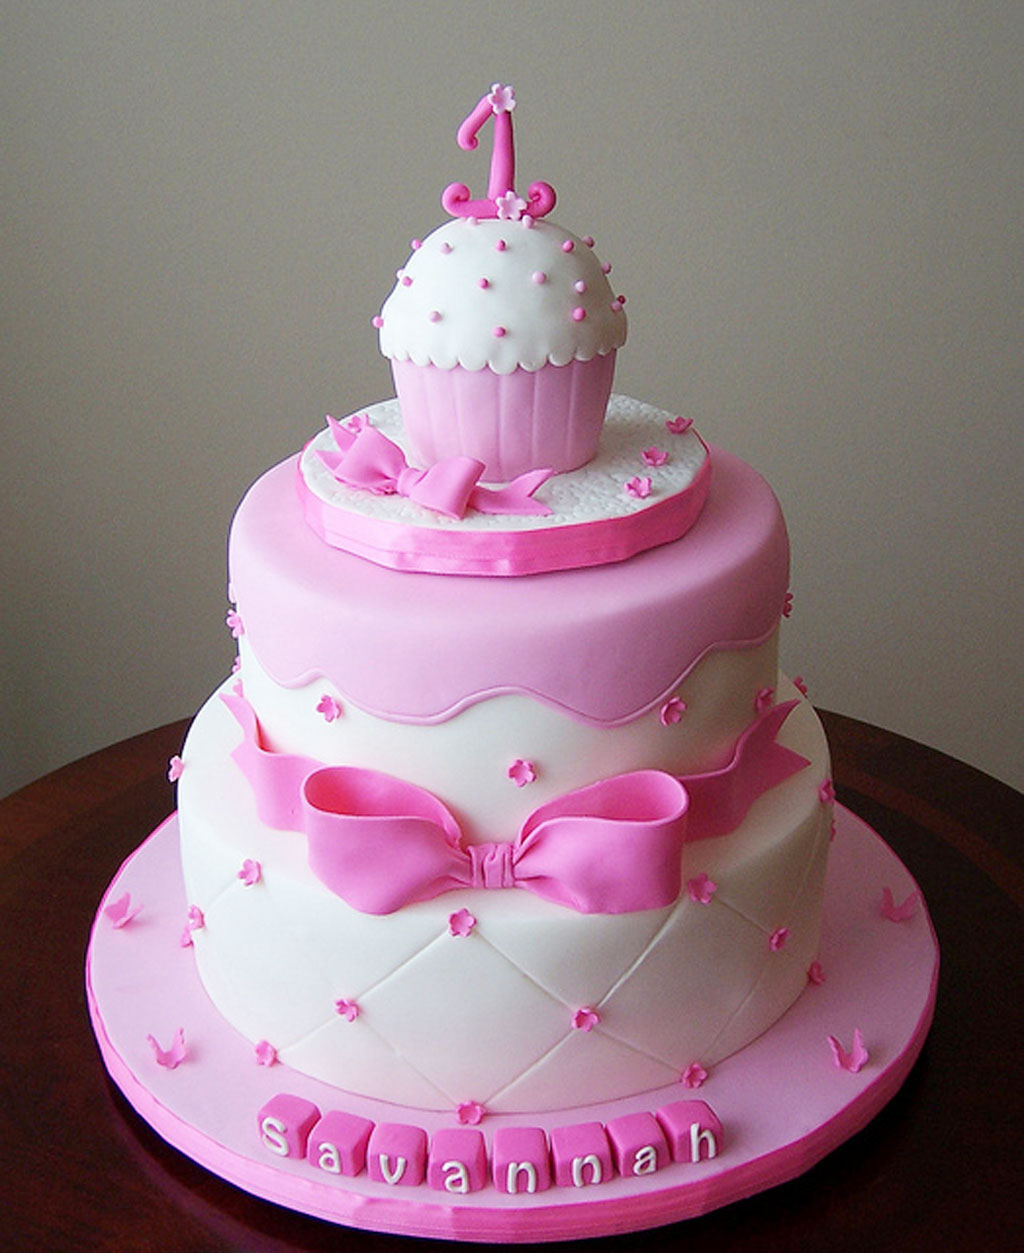 Cake Designs First Birthday : Girls 1st Birthday Cakes Birthday Cake - Cake Ideas by ...